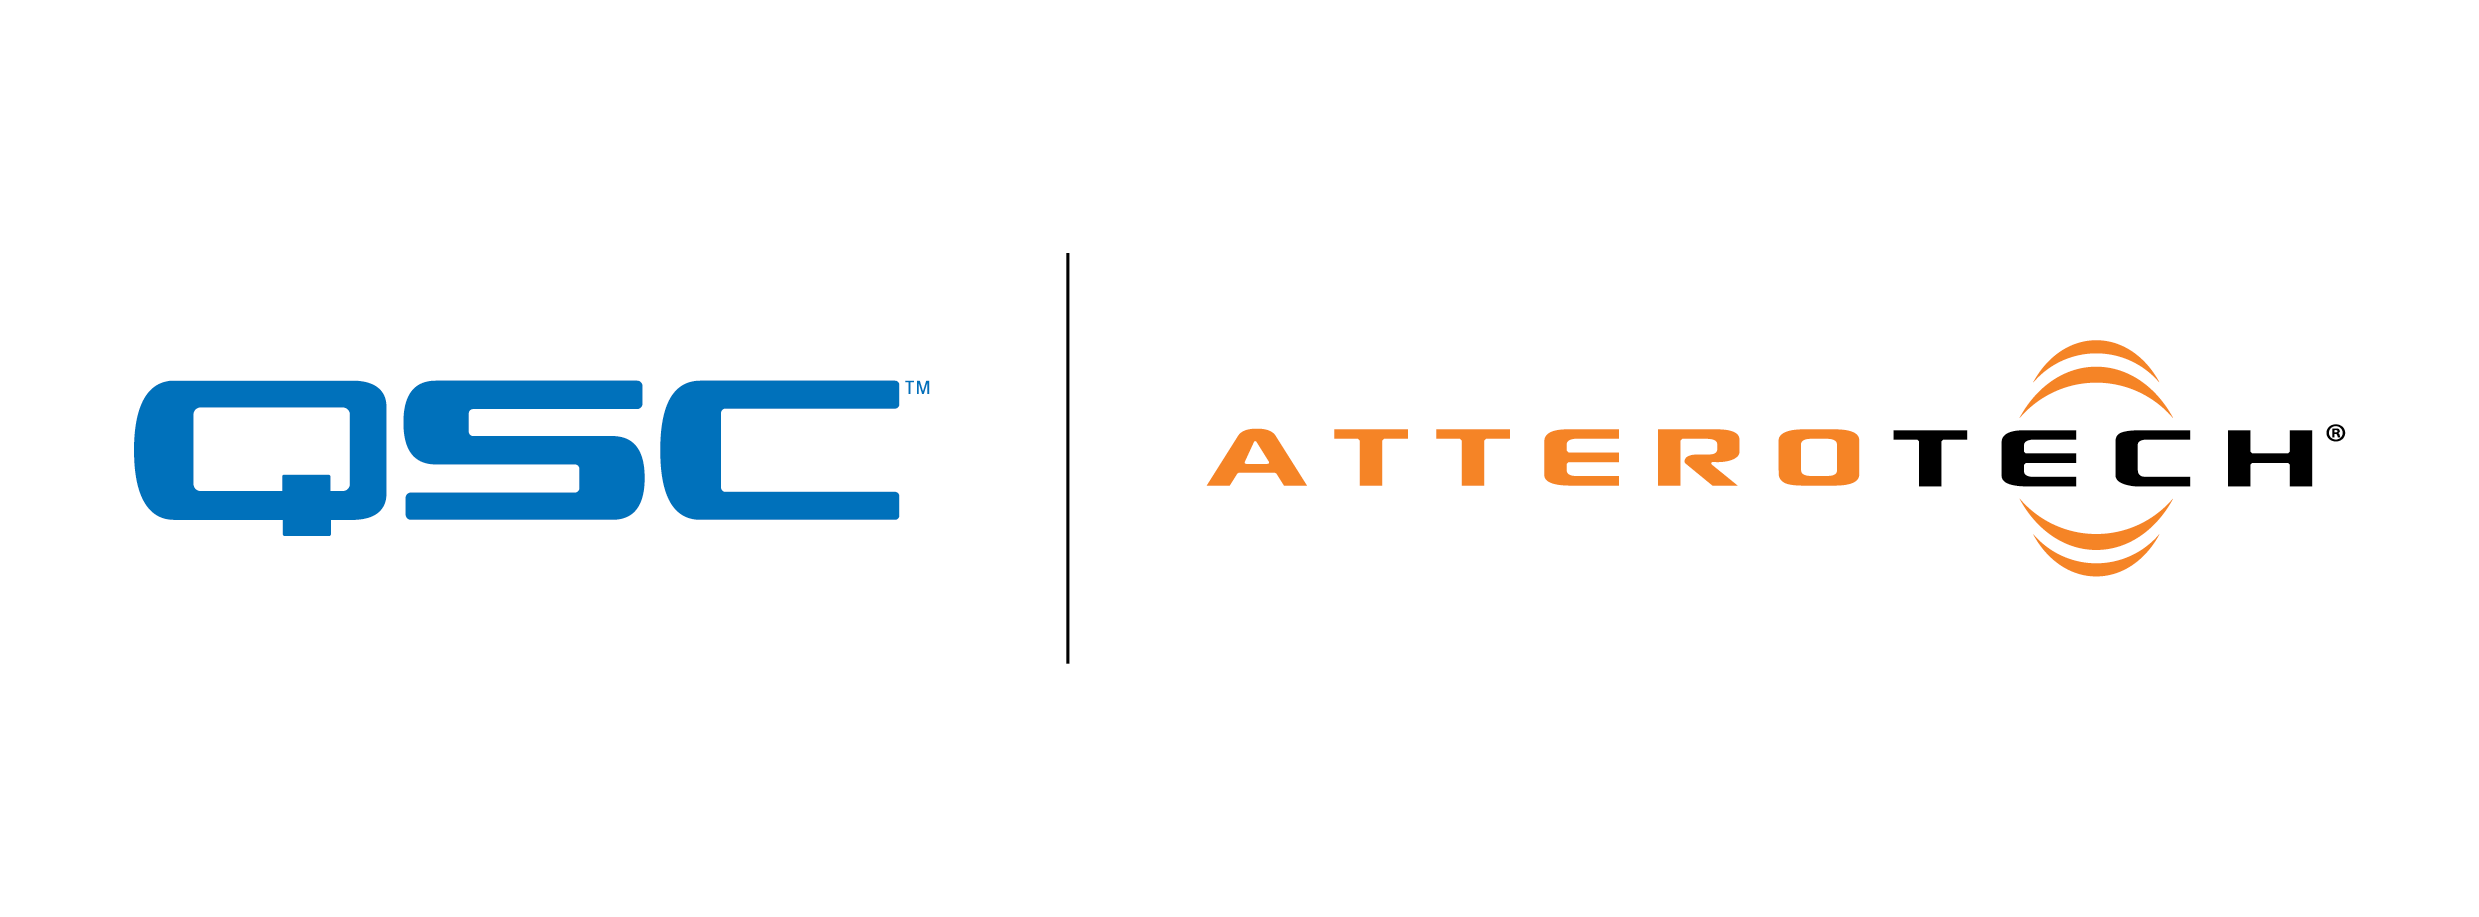 Q Sys Platform Offers Control And Monitoring Integration With Attero Equalizers Crossovers Wiring Kits Caps More Click On Picture To Tech Dante Aes67 Endpoints News Qsc